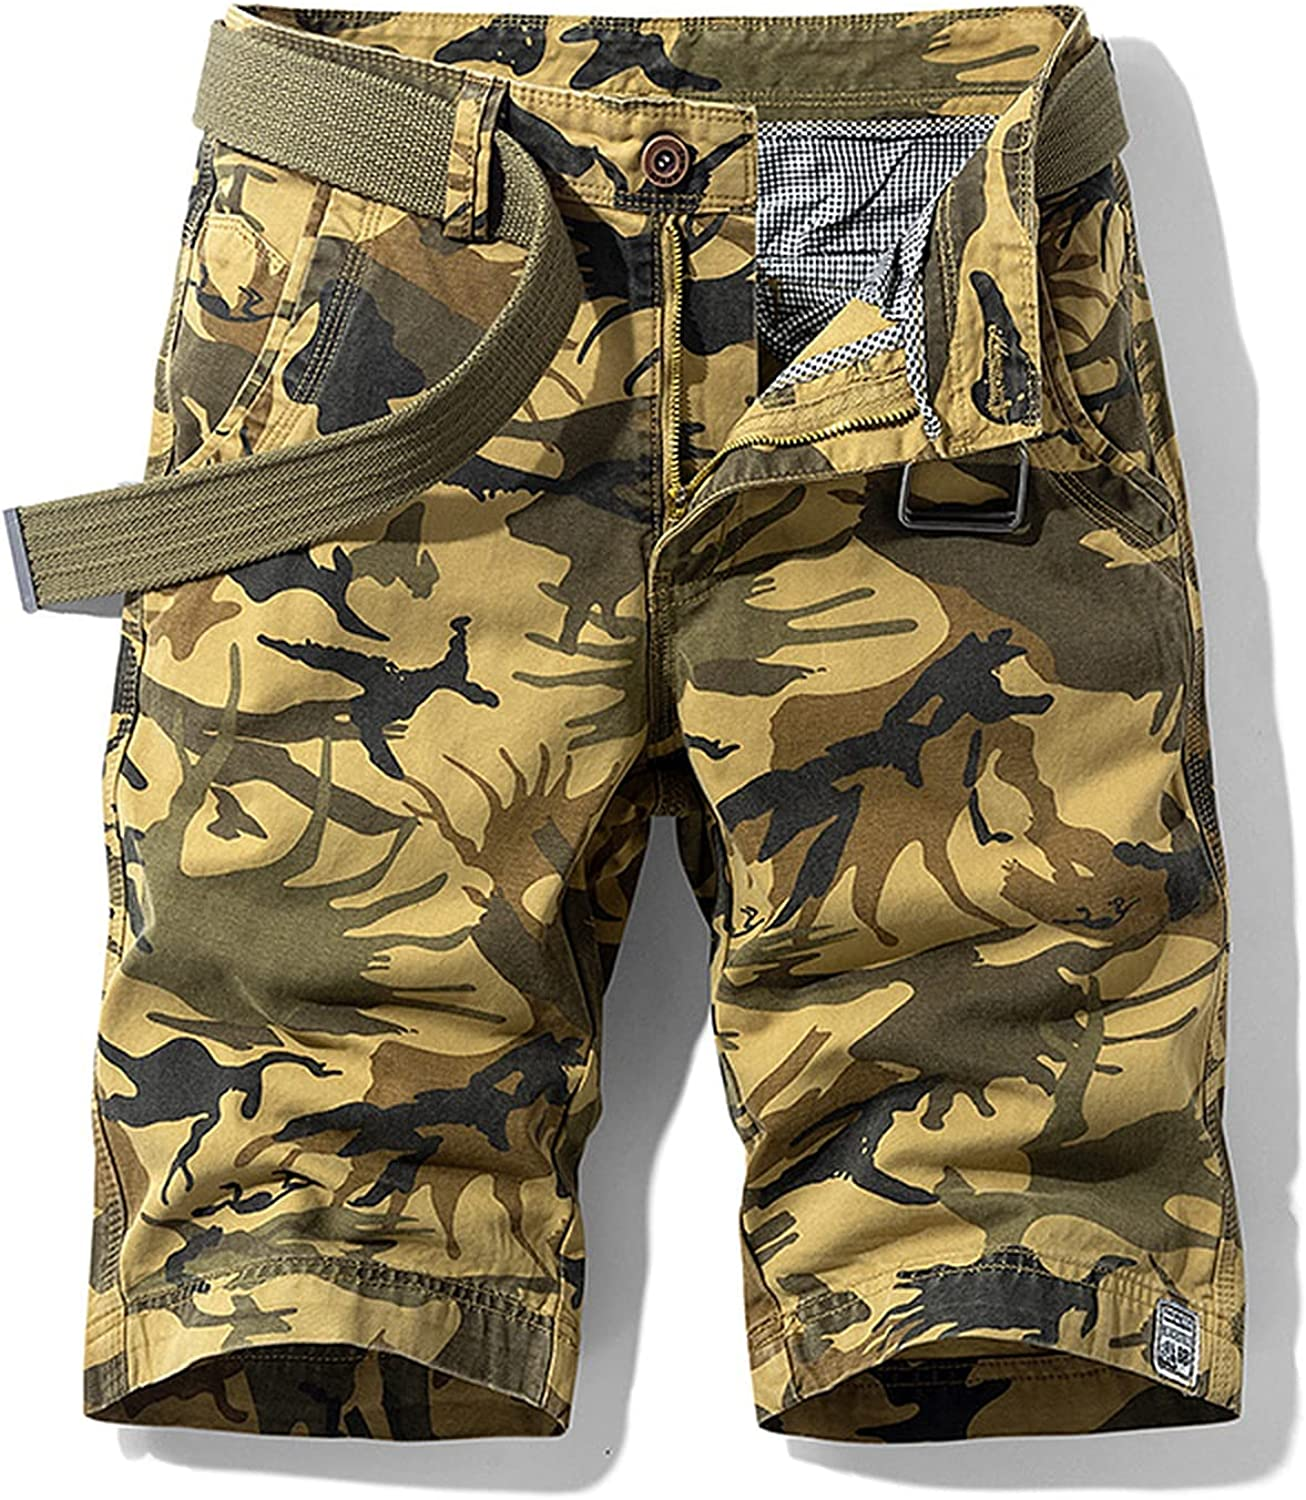 Lanng Mens Military Cargo Shorts New Army Camouflage Tactical Men Cotton Loose Work Casual Short Pants Trousers